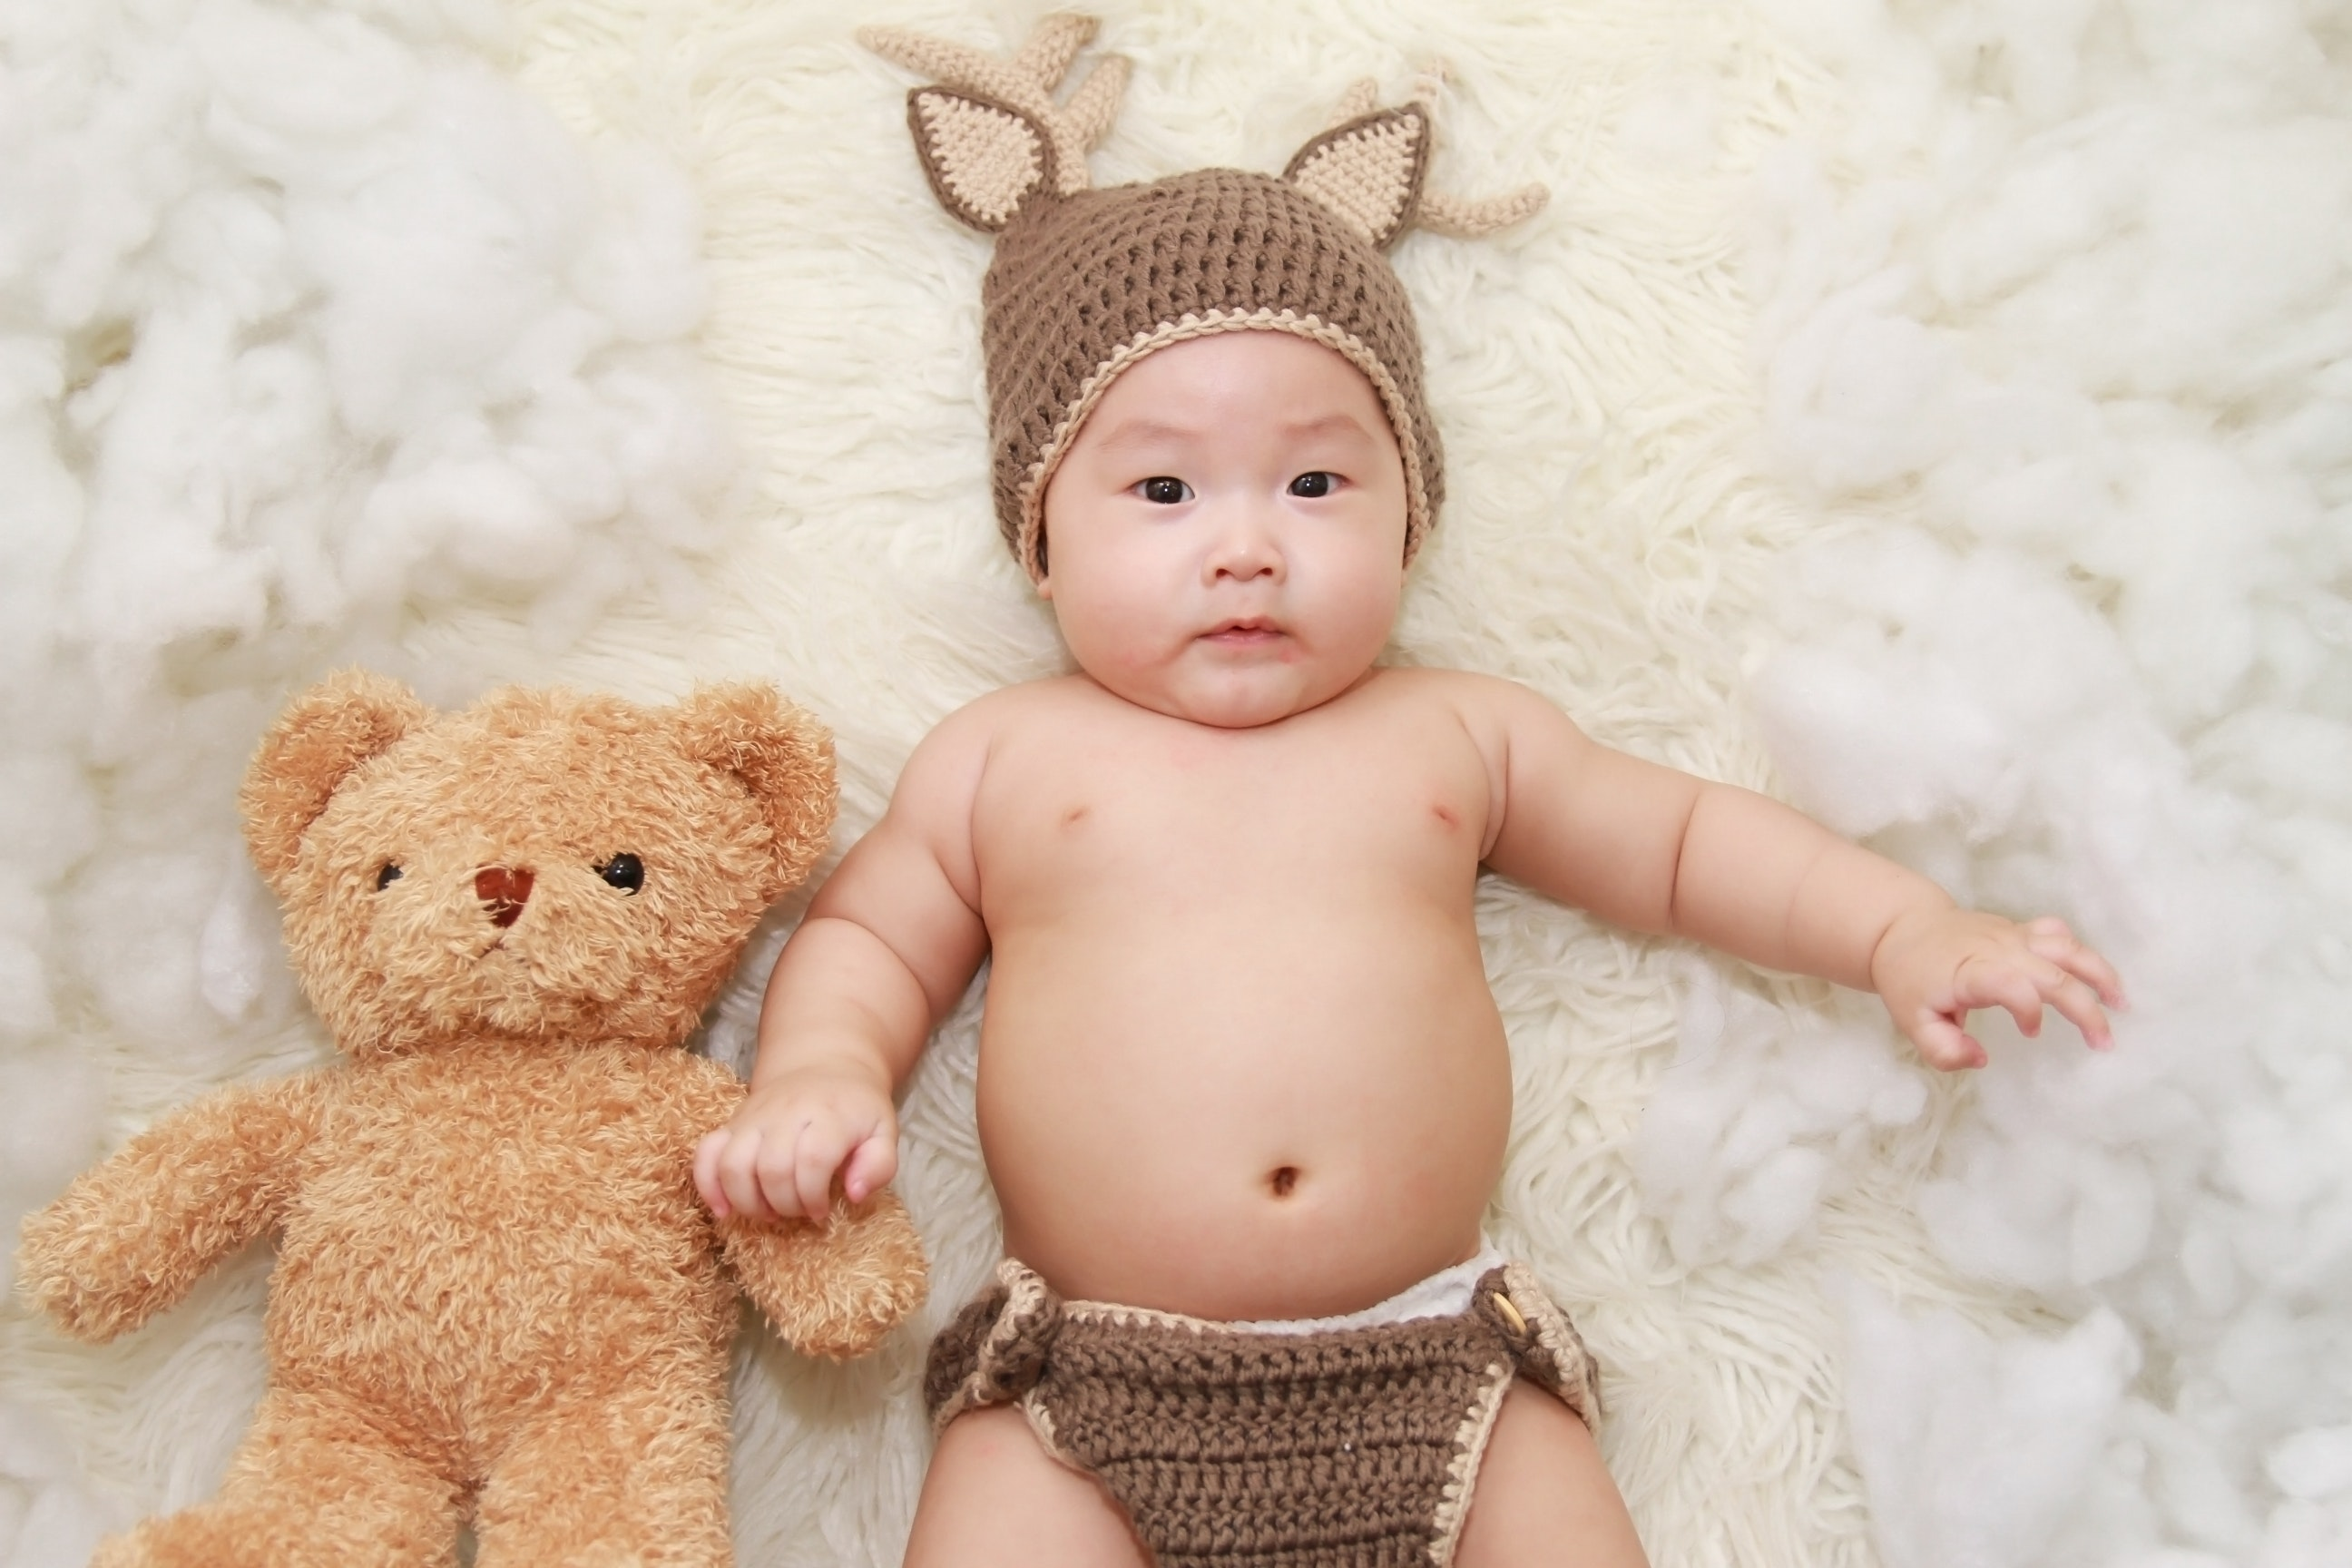 adorable-baby-beanie-421879